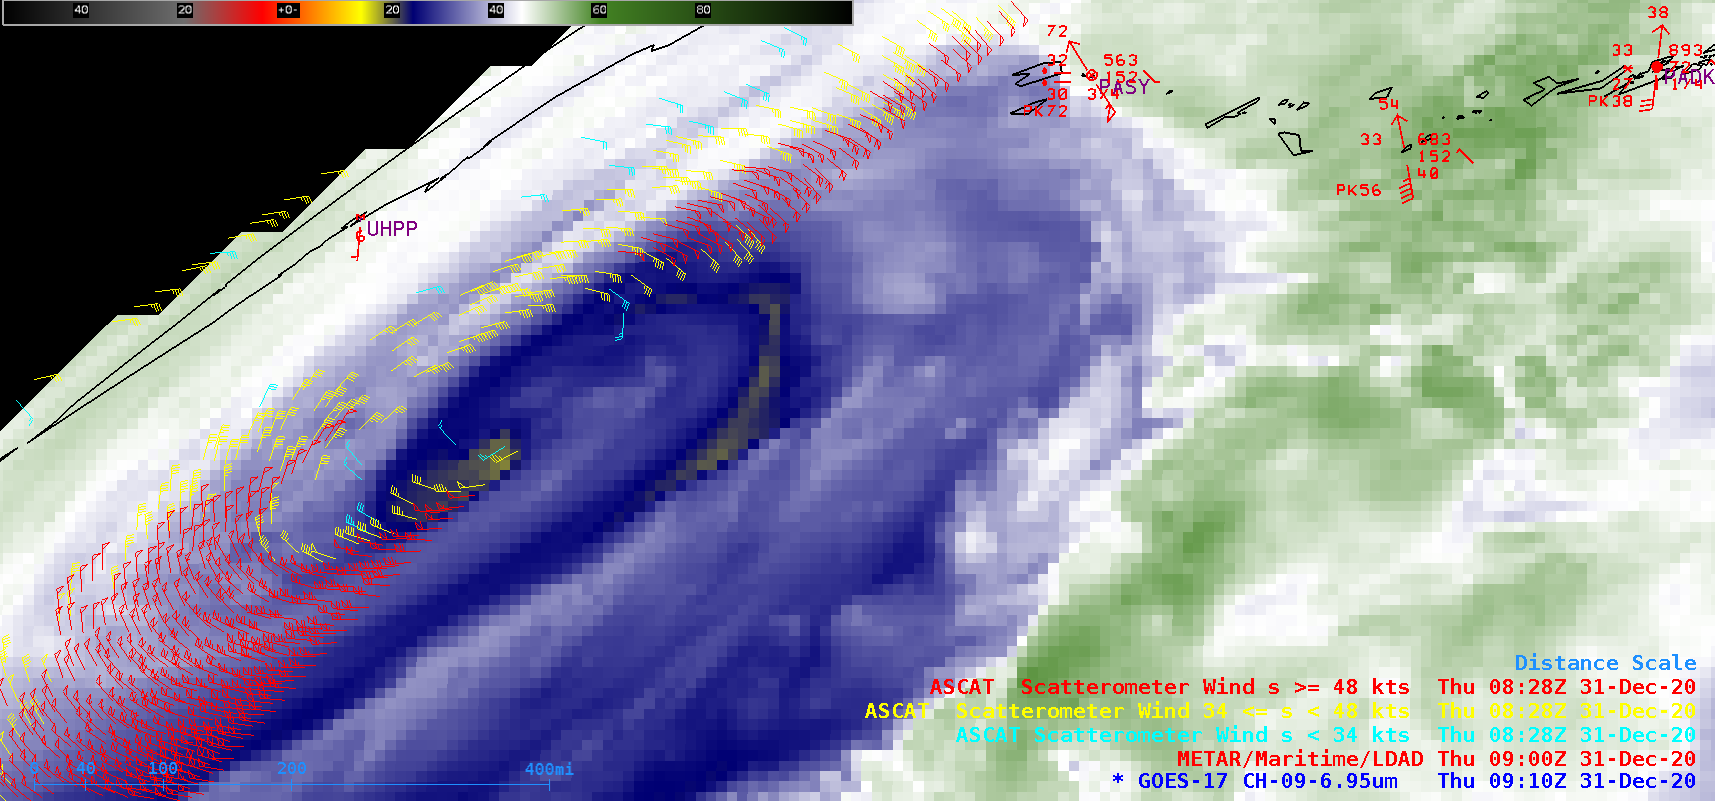 GOES-17 Mid-level Water Vapor (6.9 µm) image at 0910 UTC, with plots of Metop ASCAT surface scatterometer winds [click to enlarge]